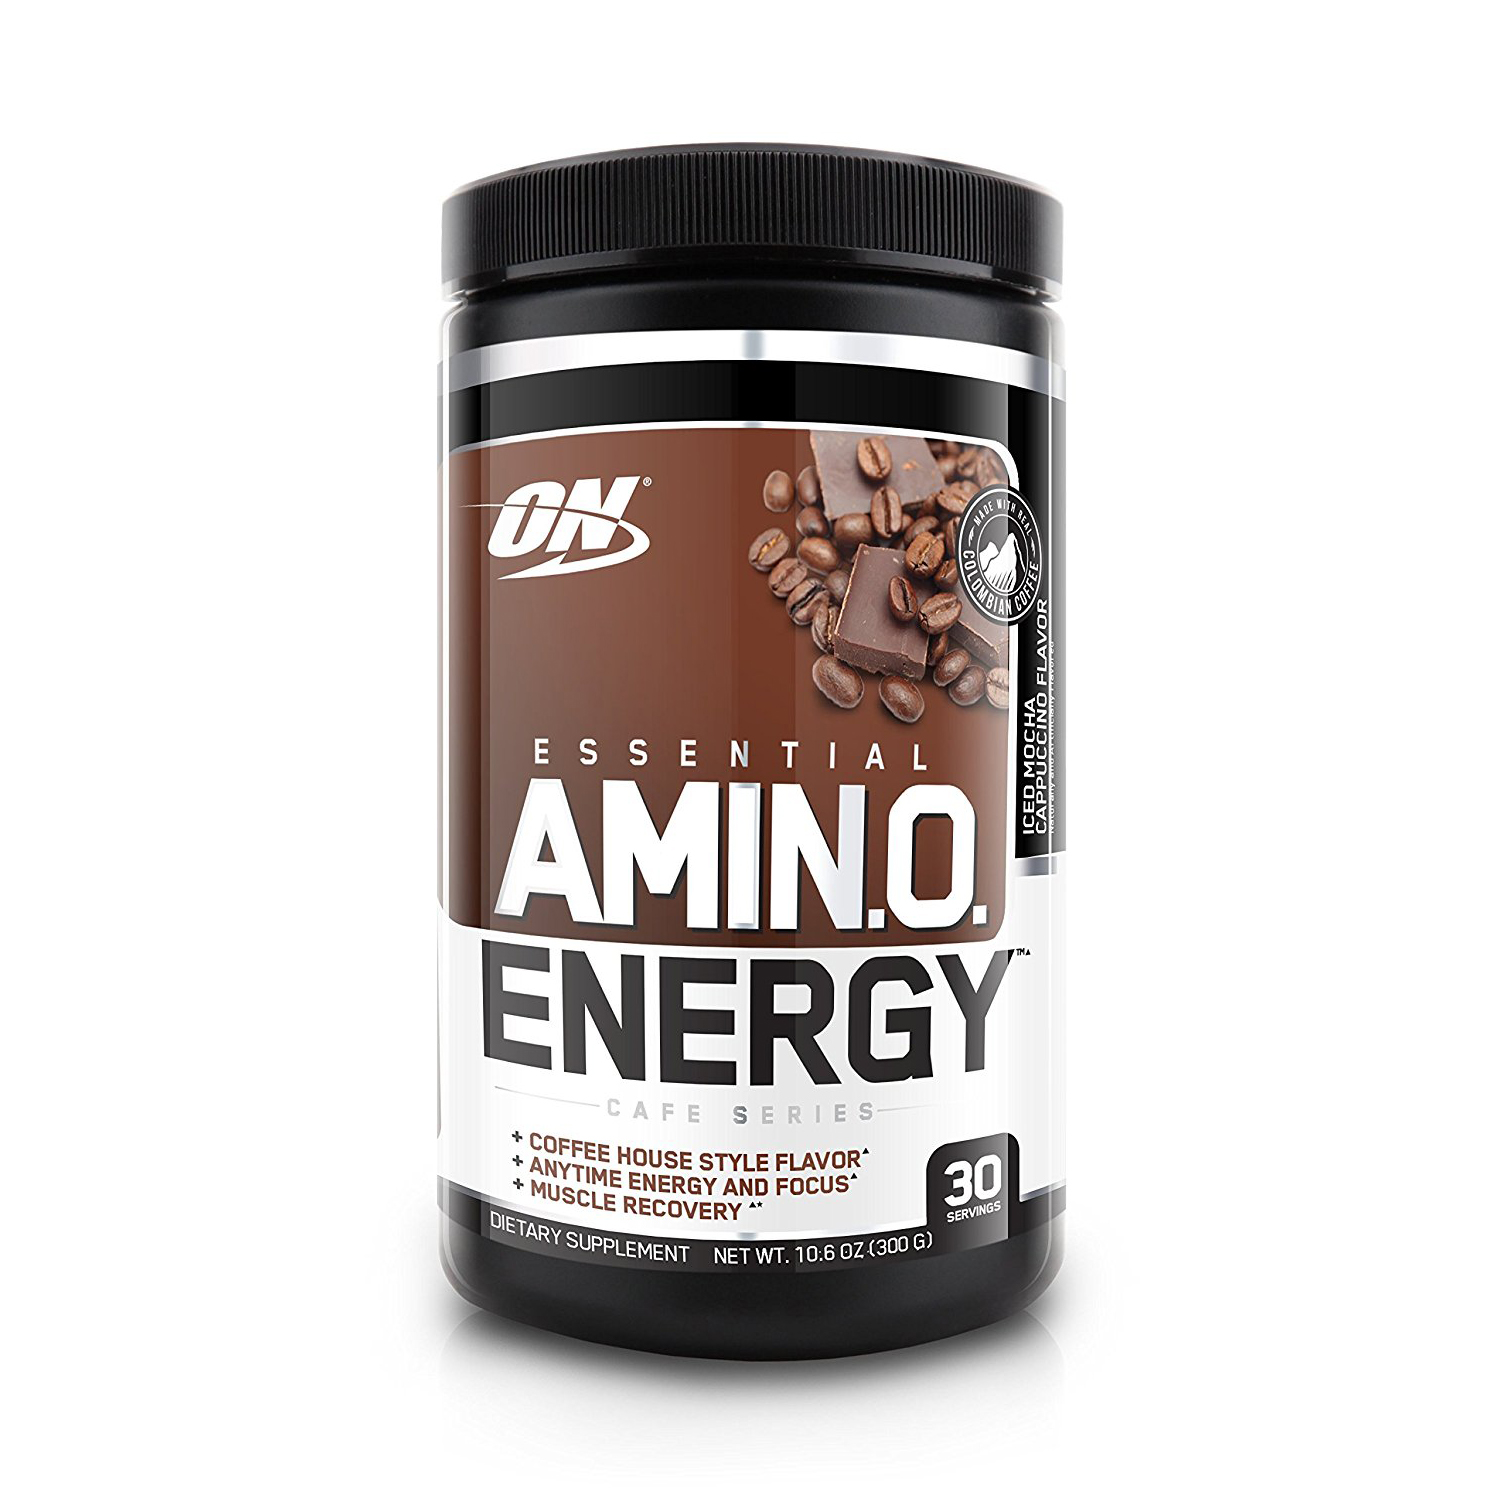 Optimum Nutrition Essential Amino Energy Iced Mocha Cappuccino 30 Servings